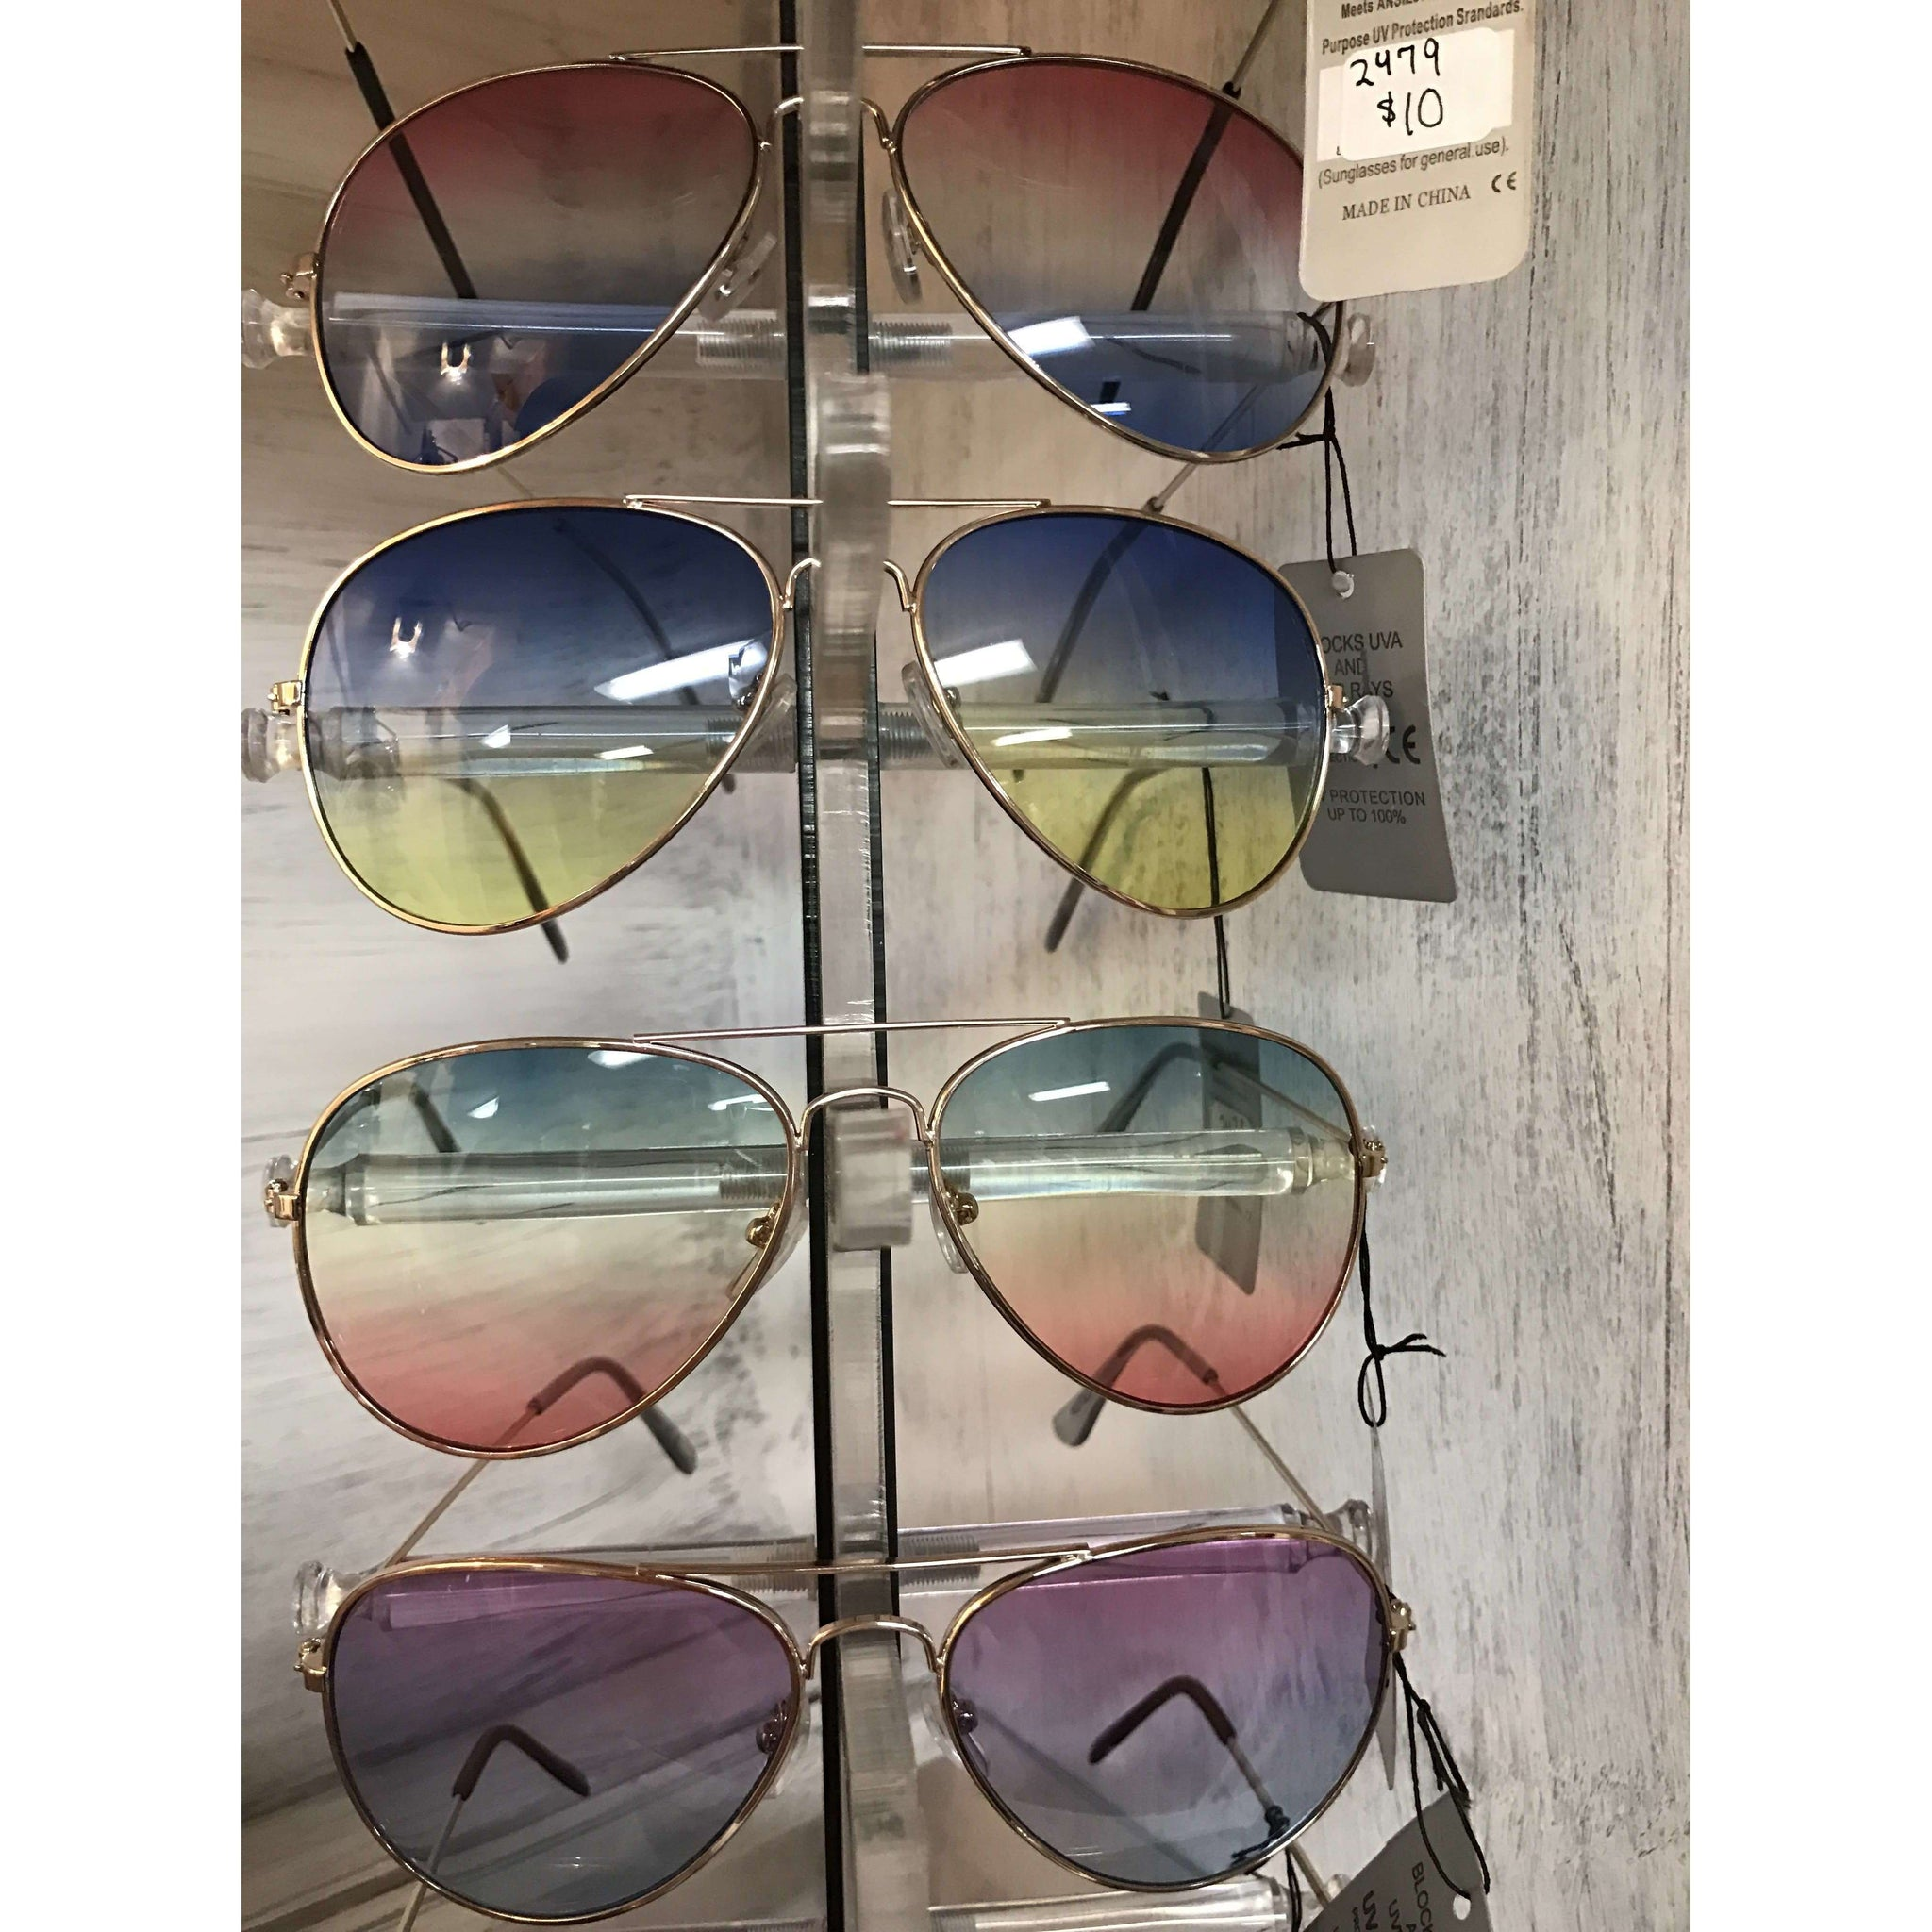 Tons of See-Thru Fun Sunnies